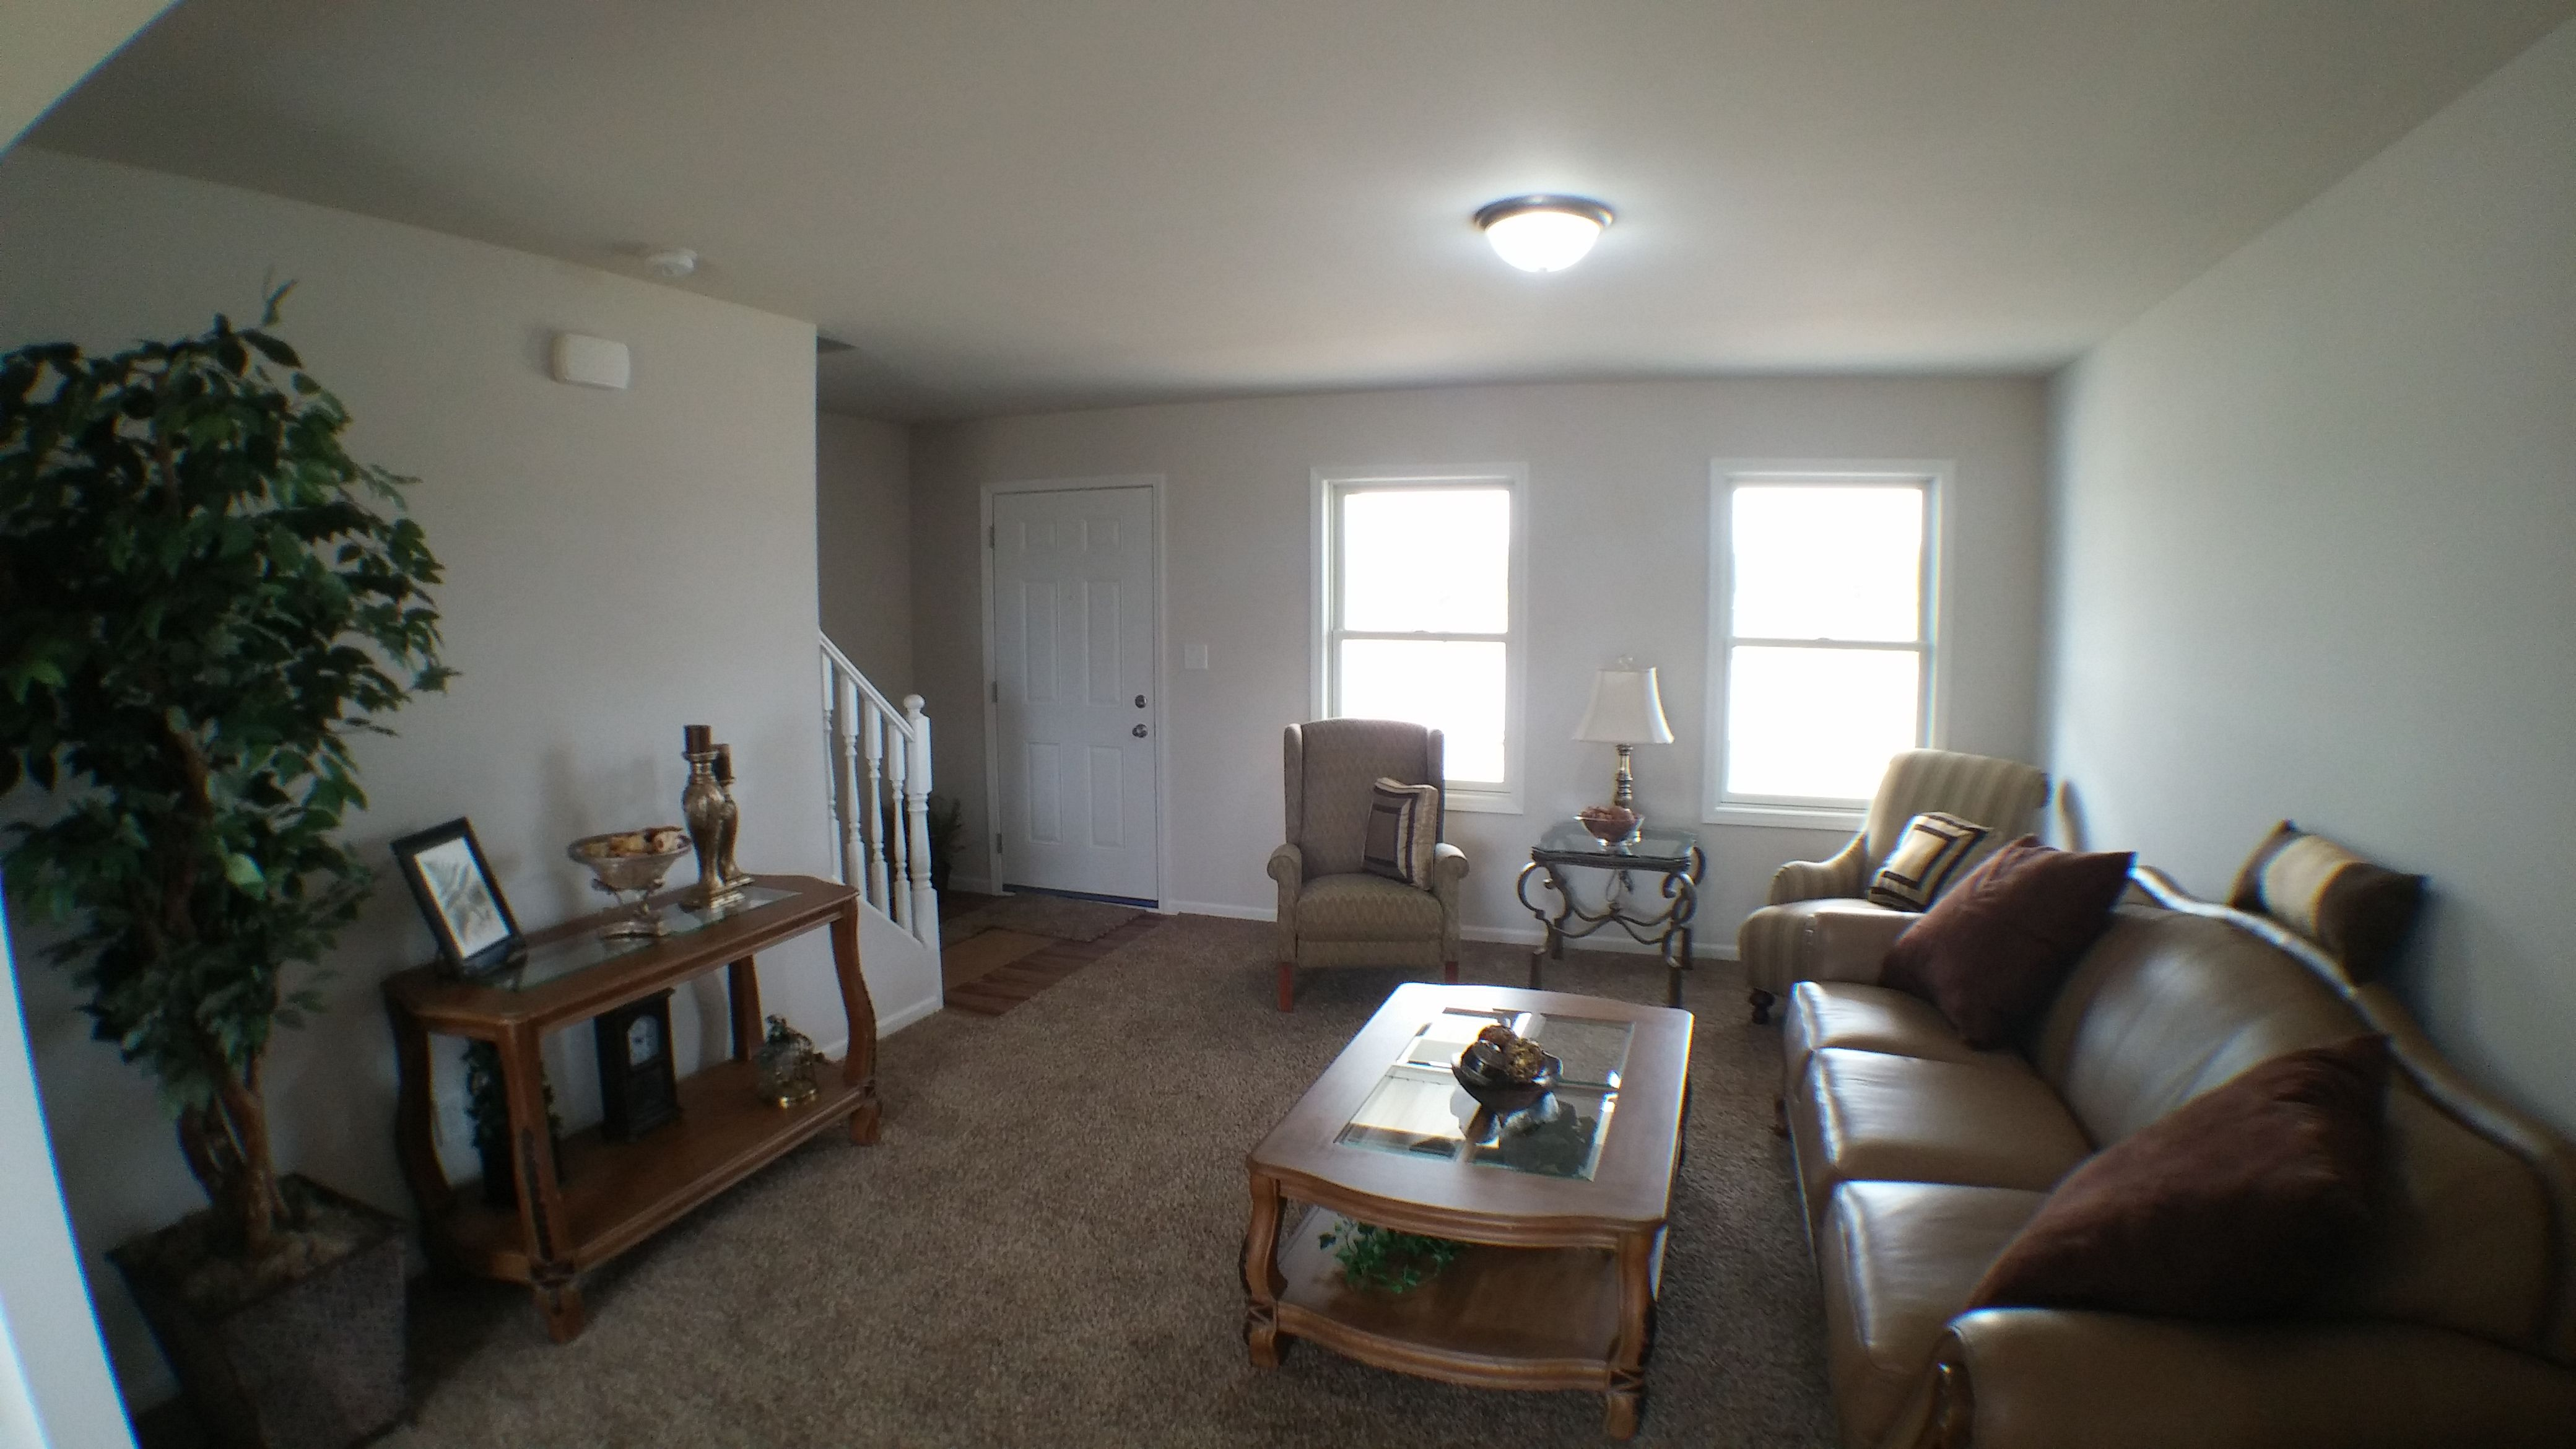 Living Area featured in the Irvington By Accent Homes Inc. in Gary, IN